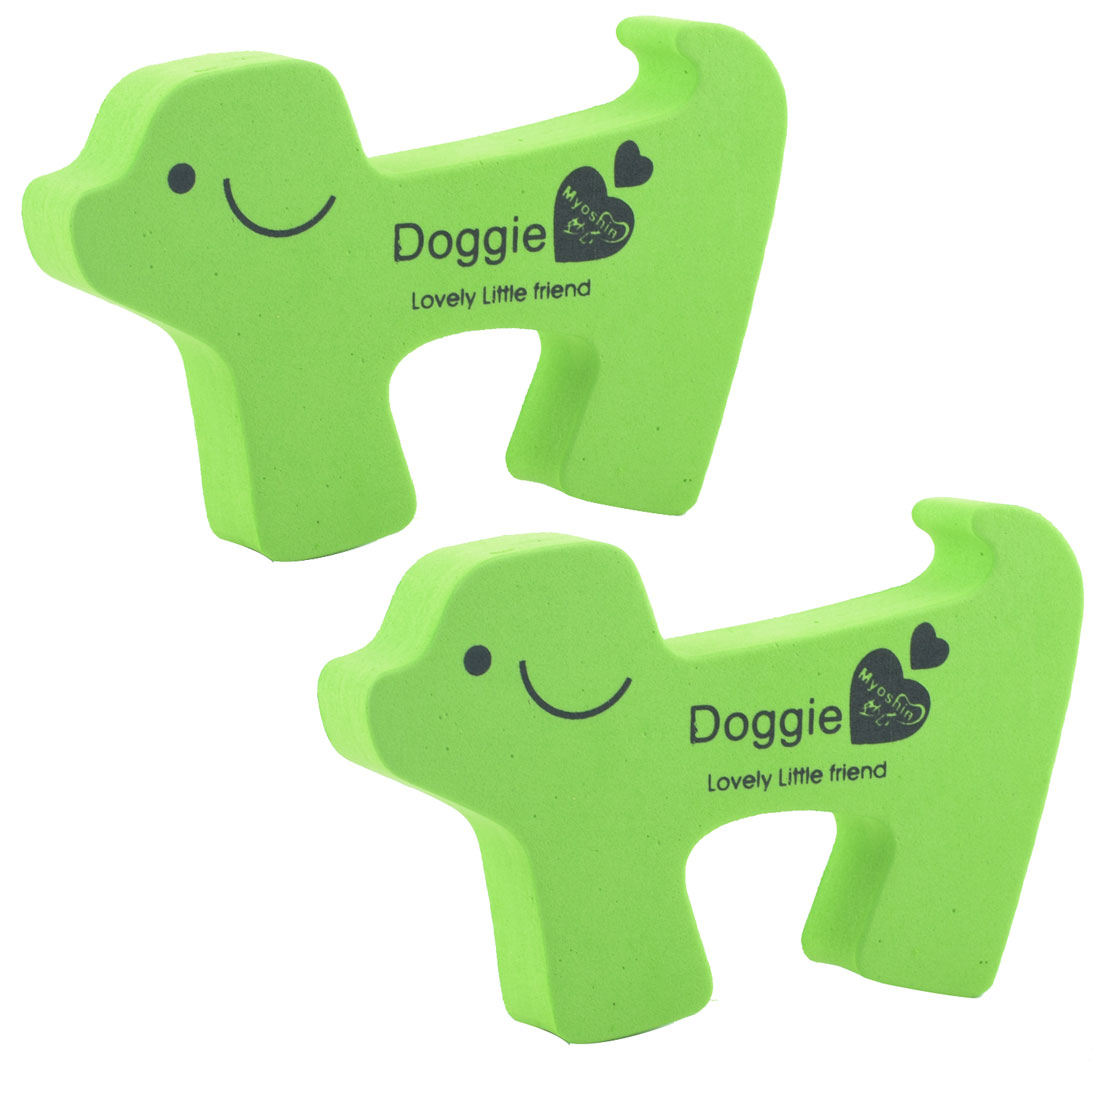 EVA Green Doggie Shape Finger Safety Guard Doorstop Door Stopper Lock Clip 2pcs